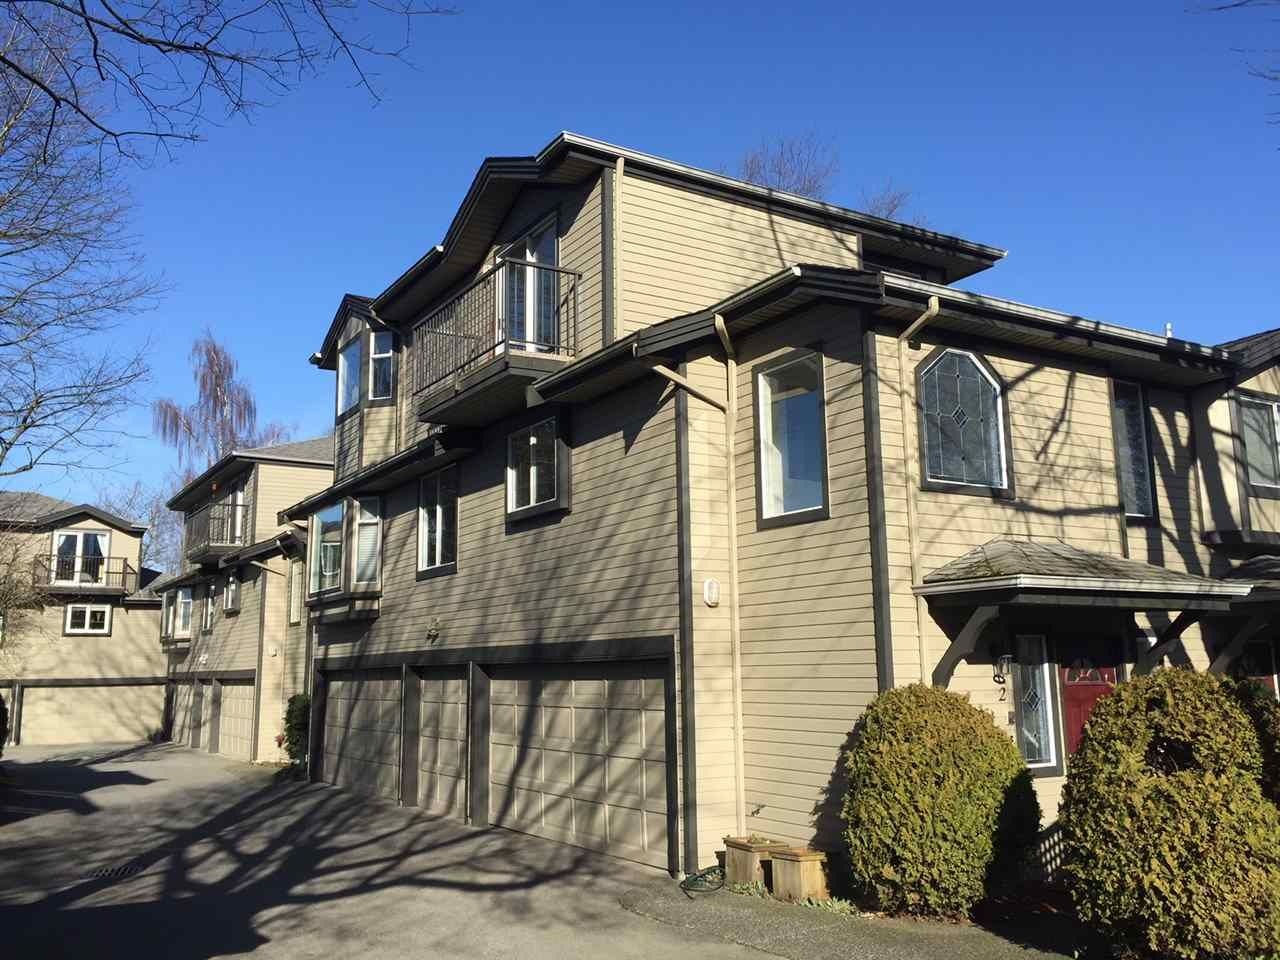 """Main Photo: 2 61 E 23RD Avenue in Vancouver: Main Townhouse for sale in """"61 EAST 23RD AVENUE PLACE"""" (Vancouver East)  : MLS®# R2225680"""